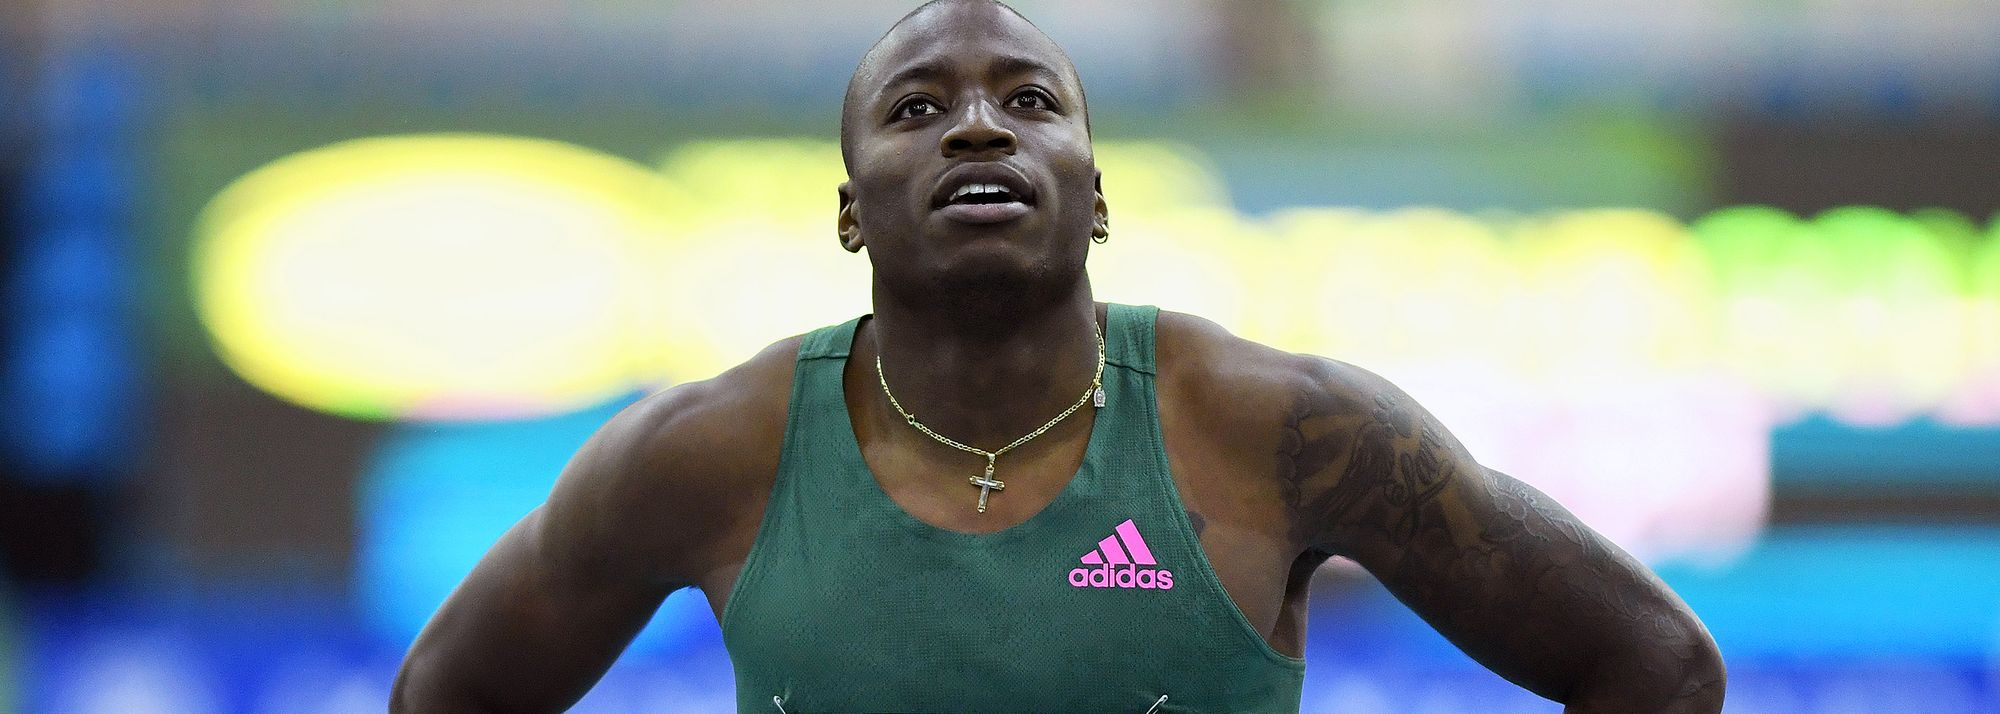 After breaking the world indoor 60m hurdles record, Grant Holloway looks to the future